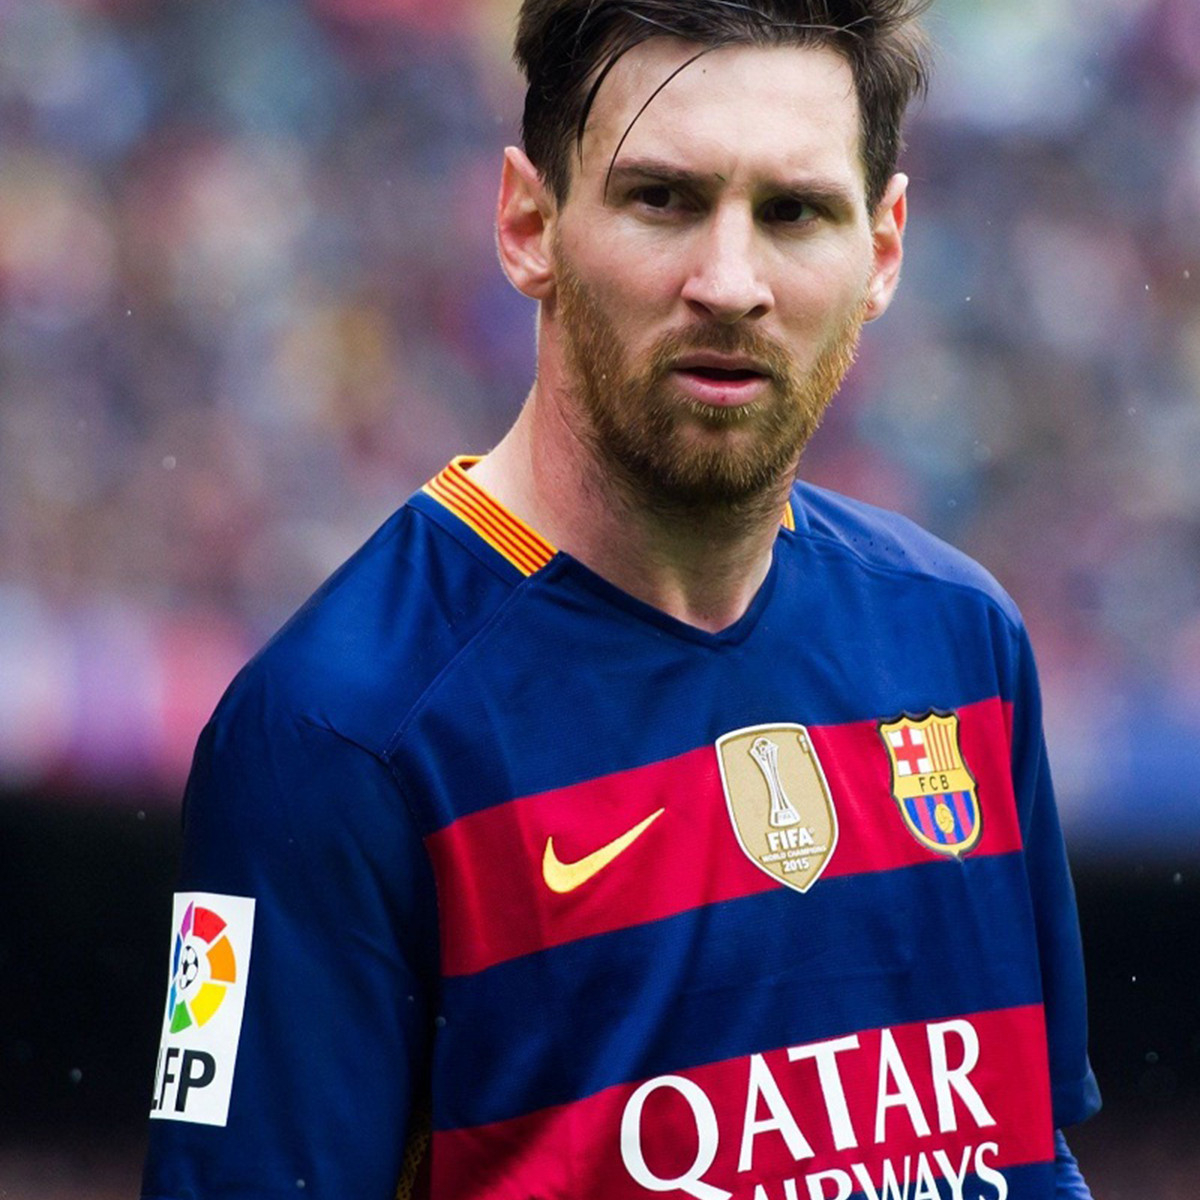 Player Lionel Messi hot favorite player of football team